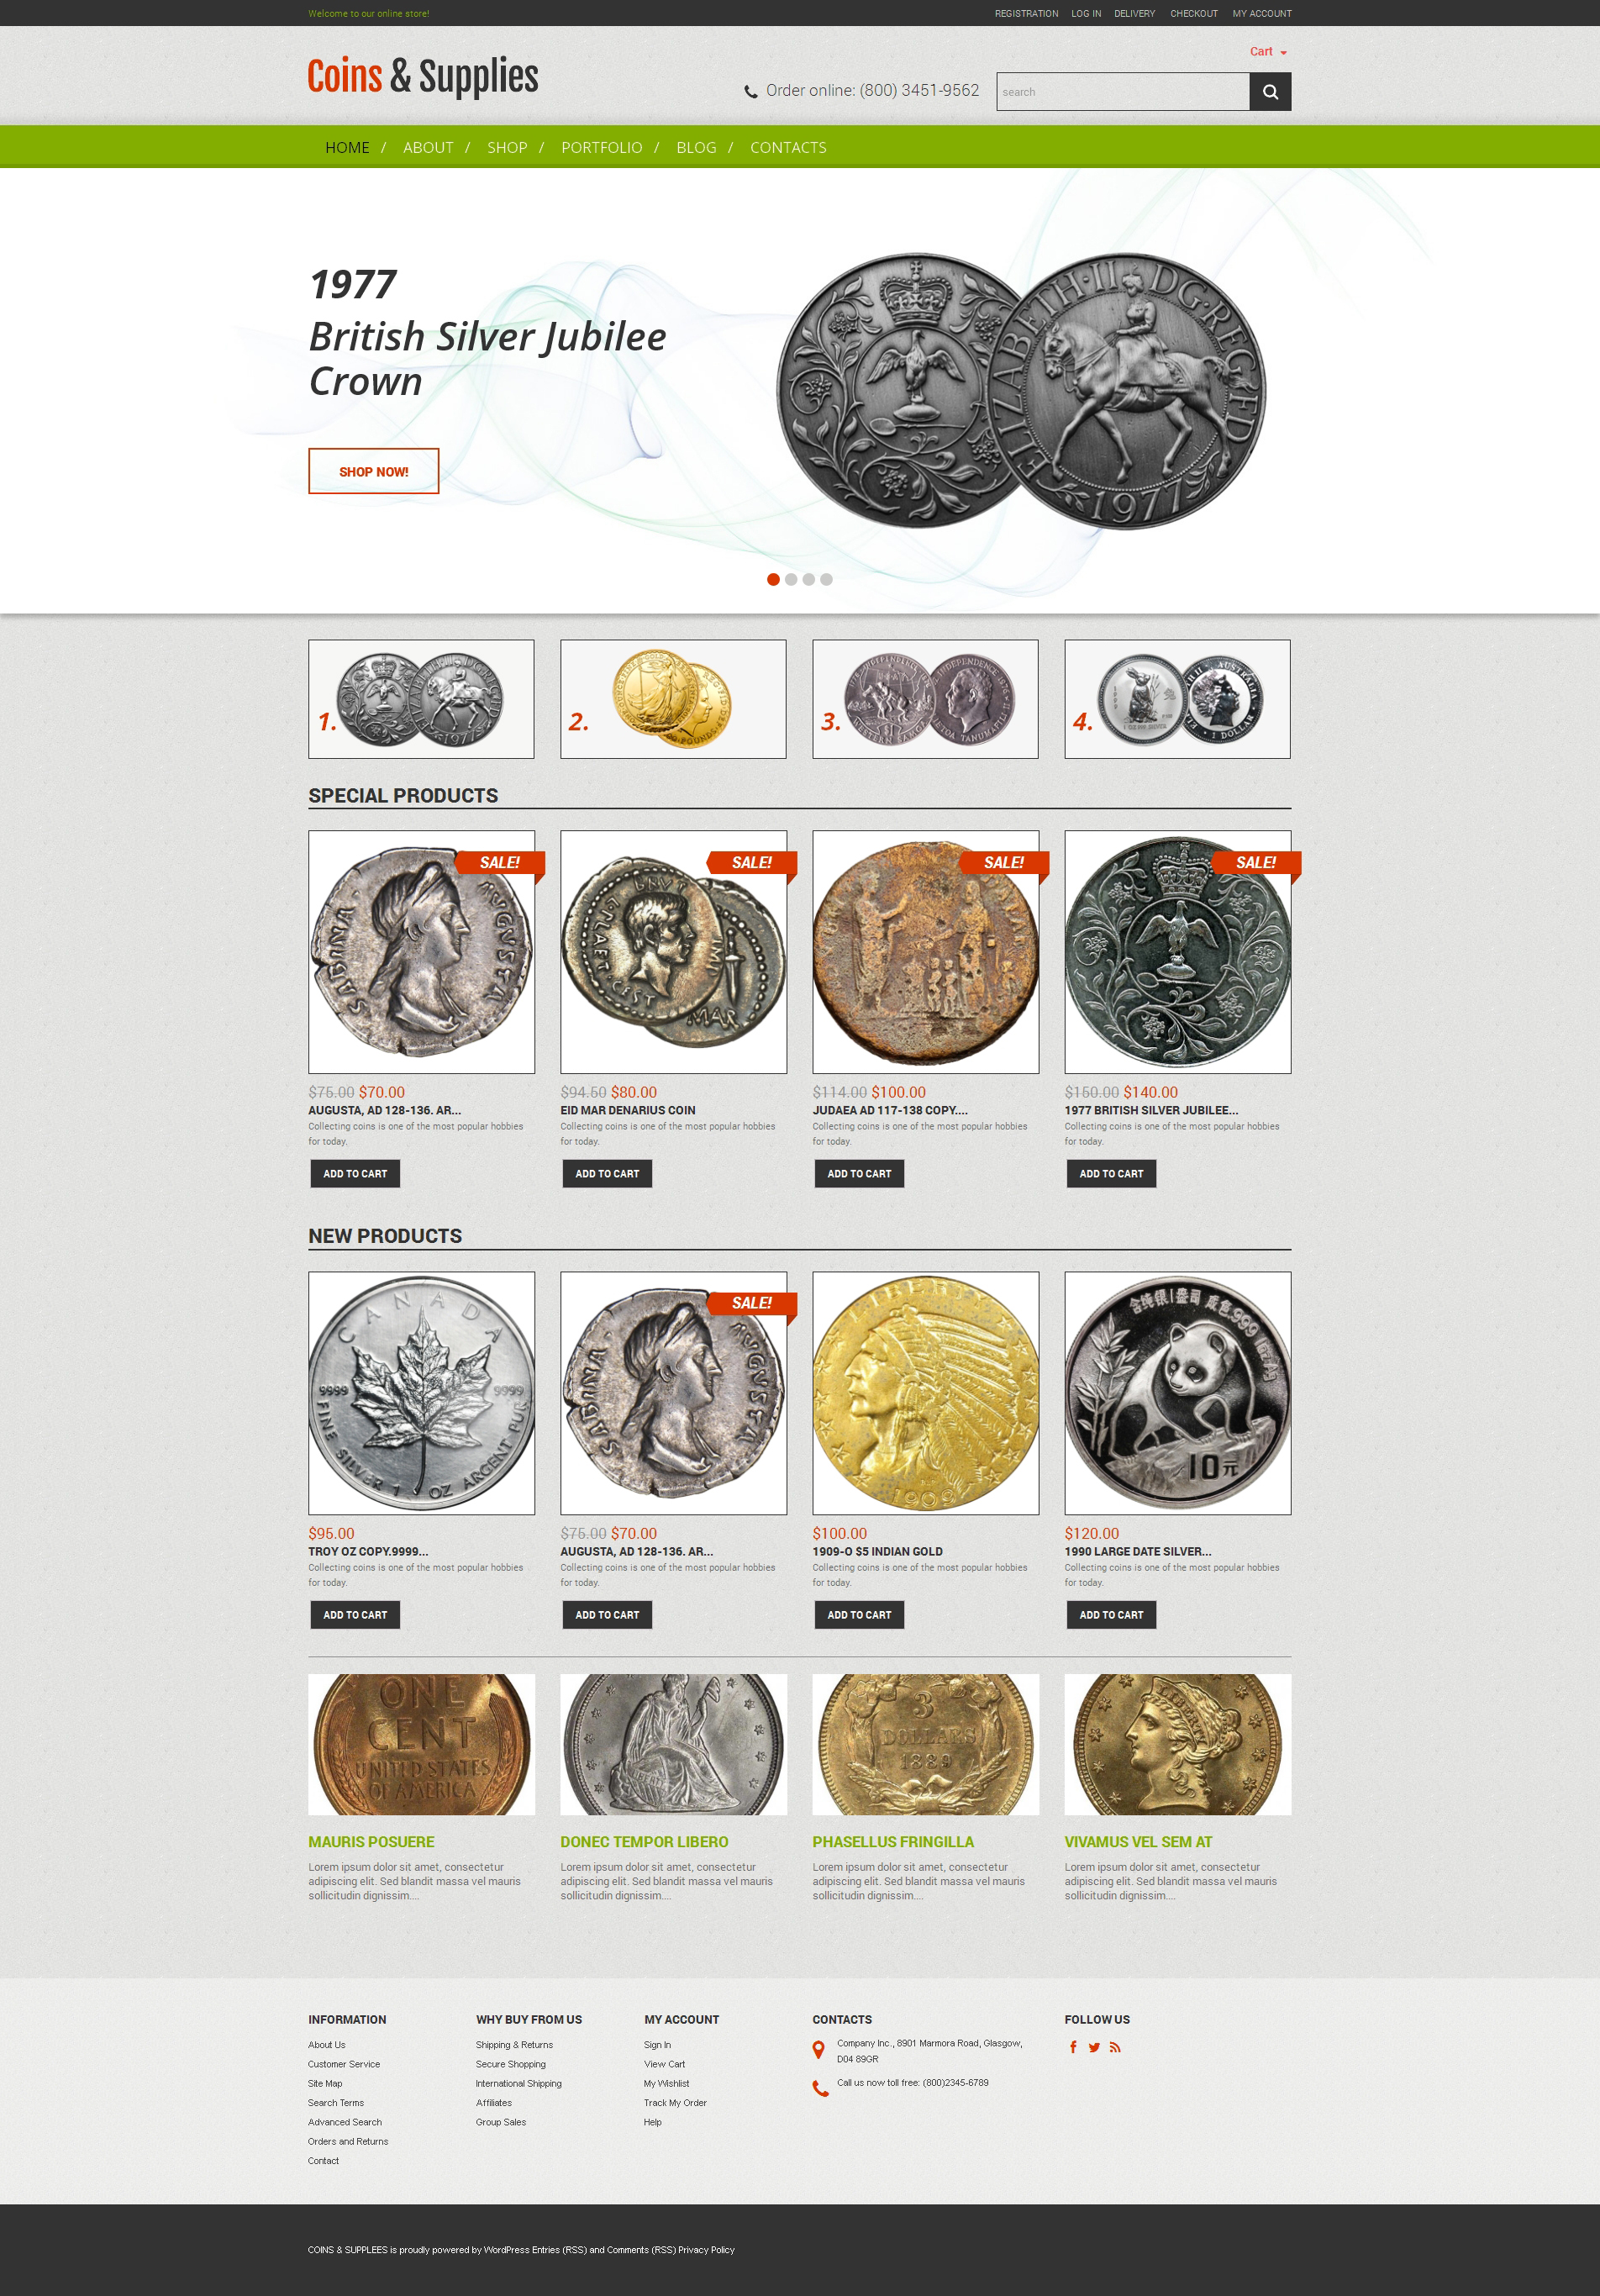 Numismatics: a selection of sites